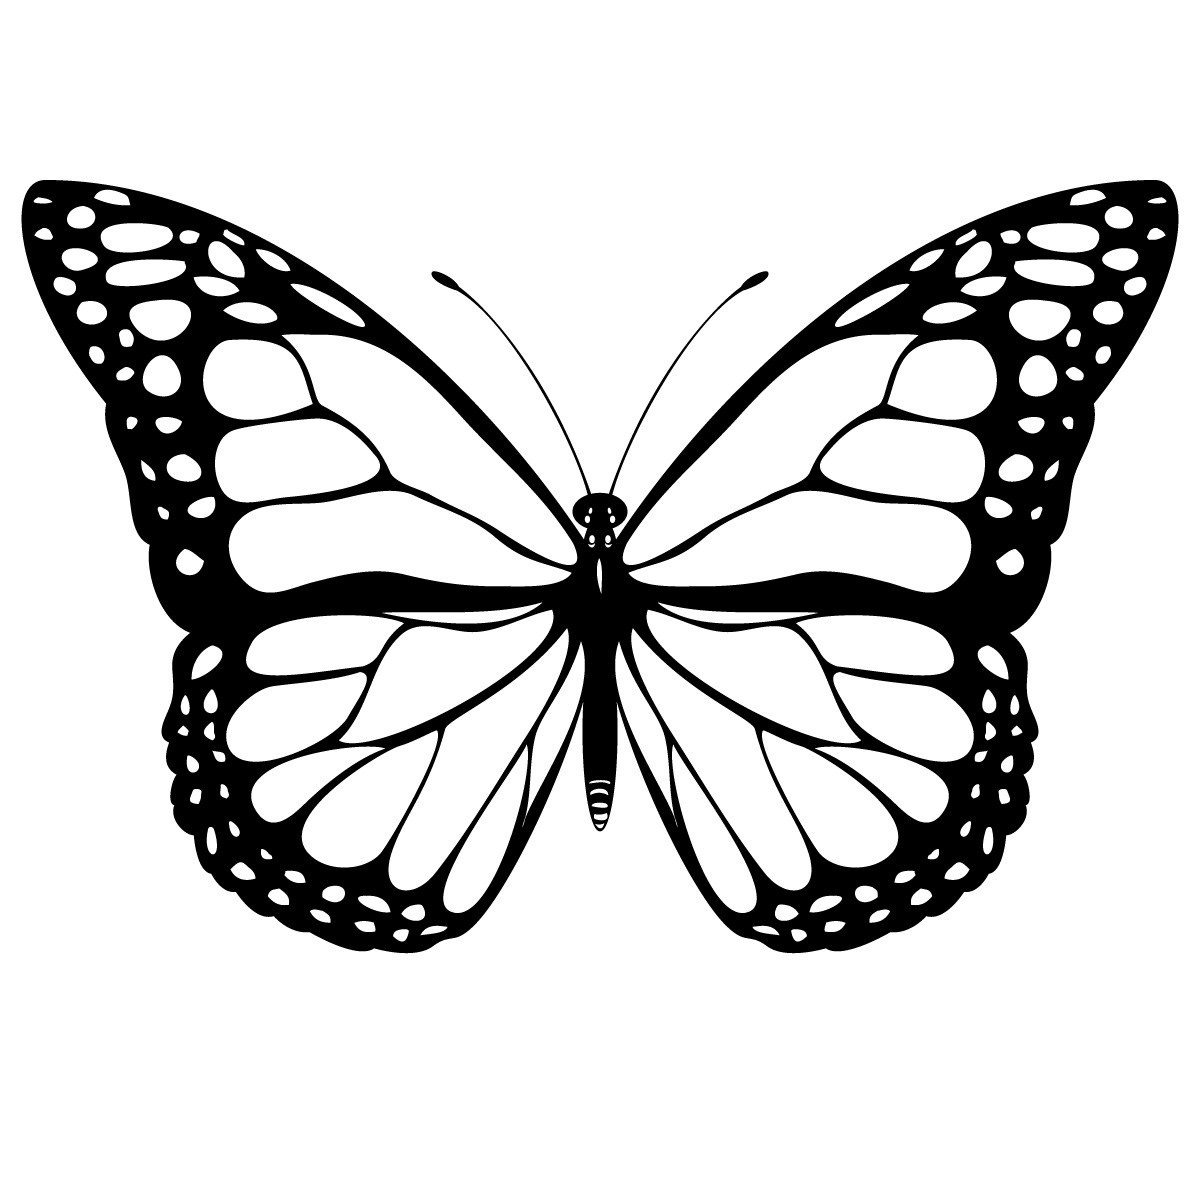 Action Beauty Coloring Pages Of Butterfly Images cute free printable butterfly coloring pages for kids gallery images